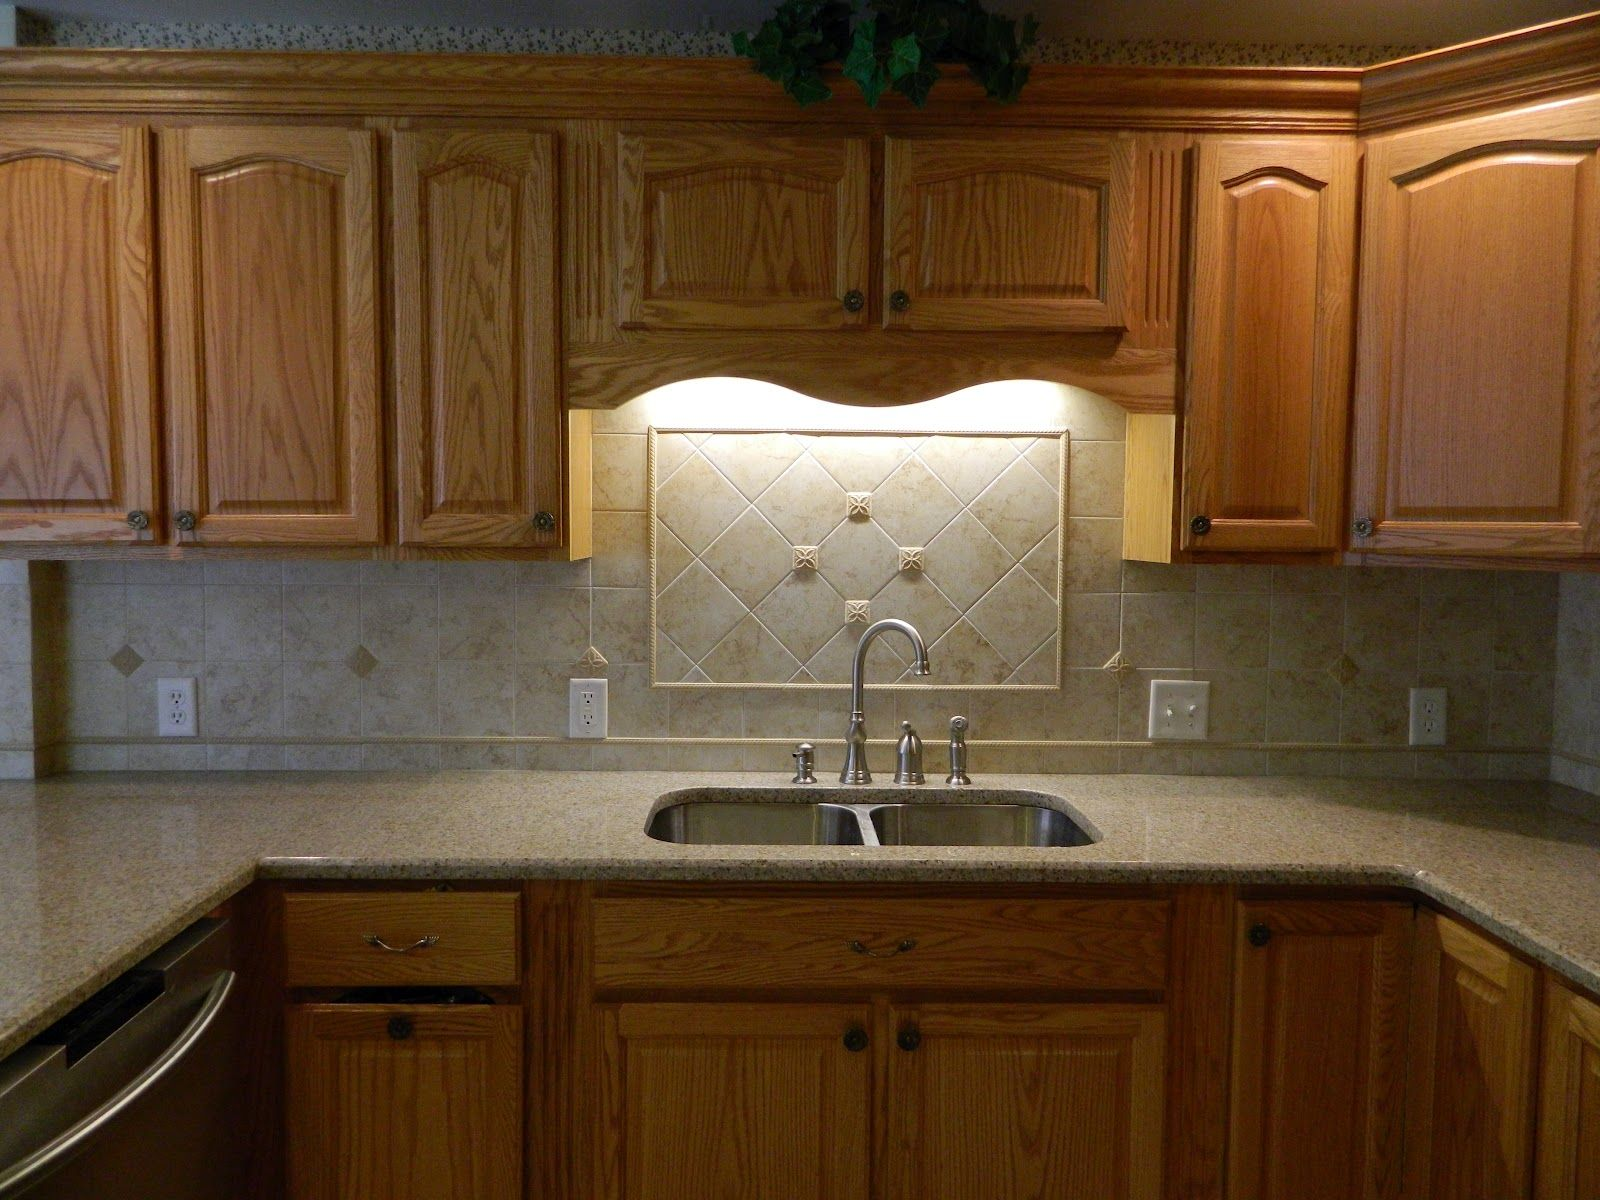 Oak Kitchen Cabinets With Granite Countertops : Kitchen awesome oak cabinets with granite